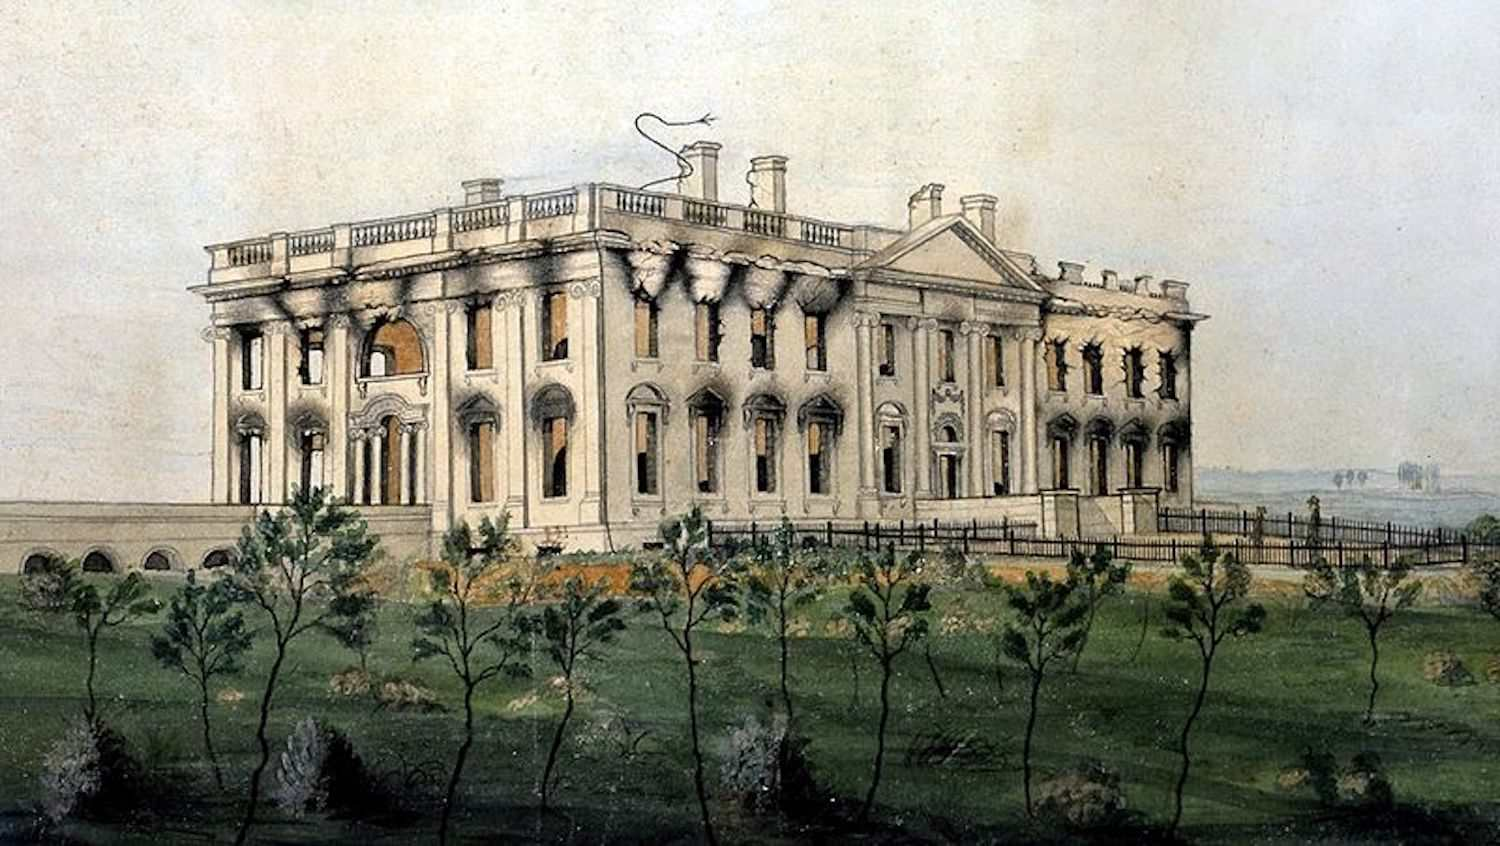 The President's House by George Munger